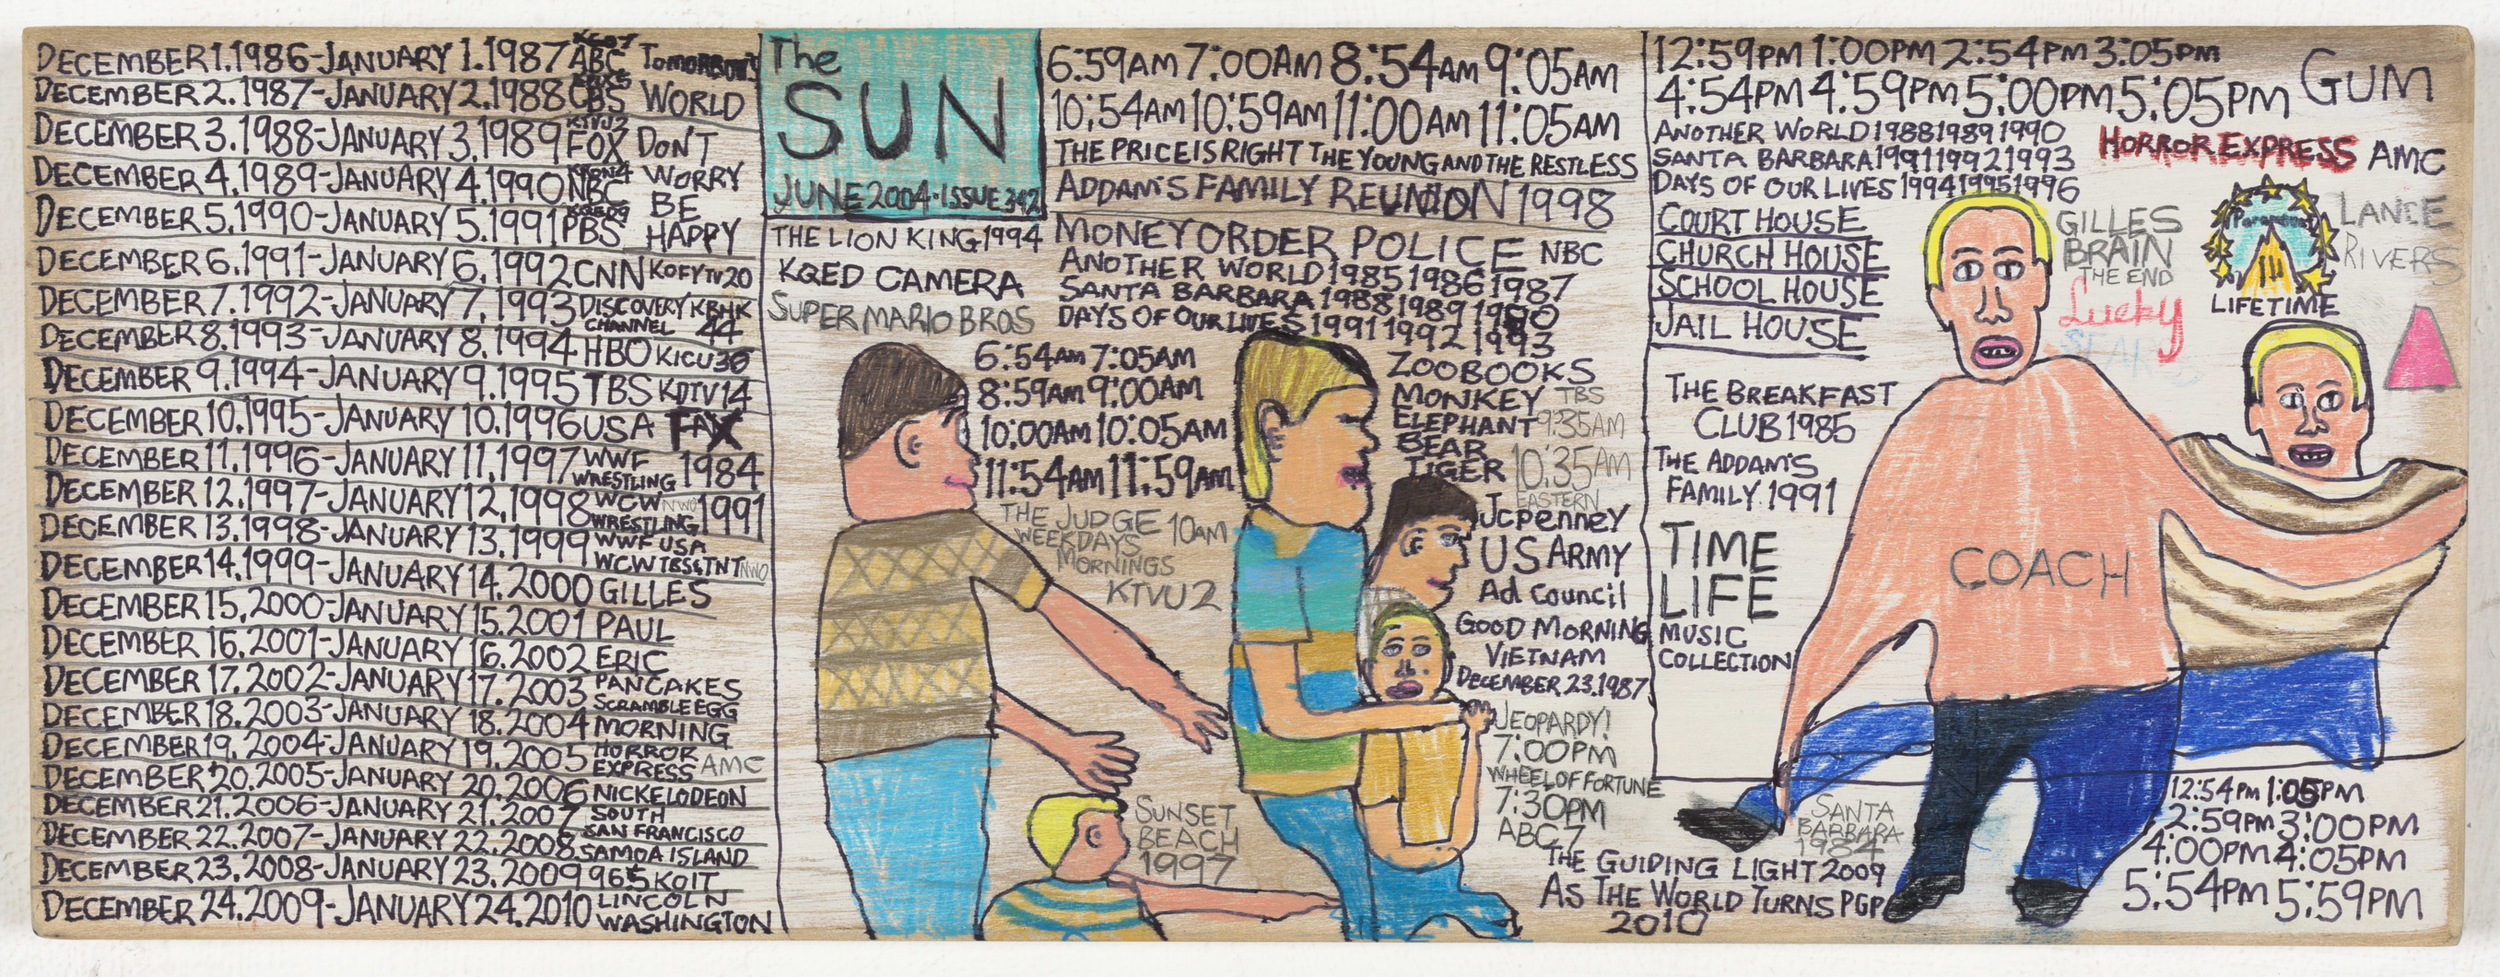 Daniel Green,  The Sun , 2015, mixed media on wood, 6 x 16.5 x 1 inch